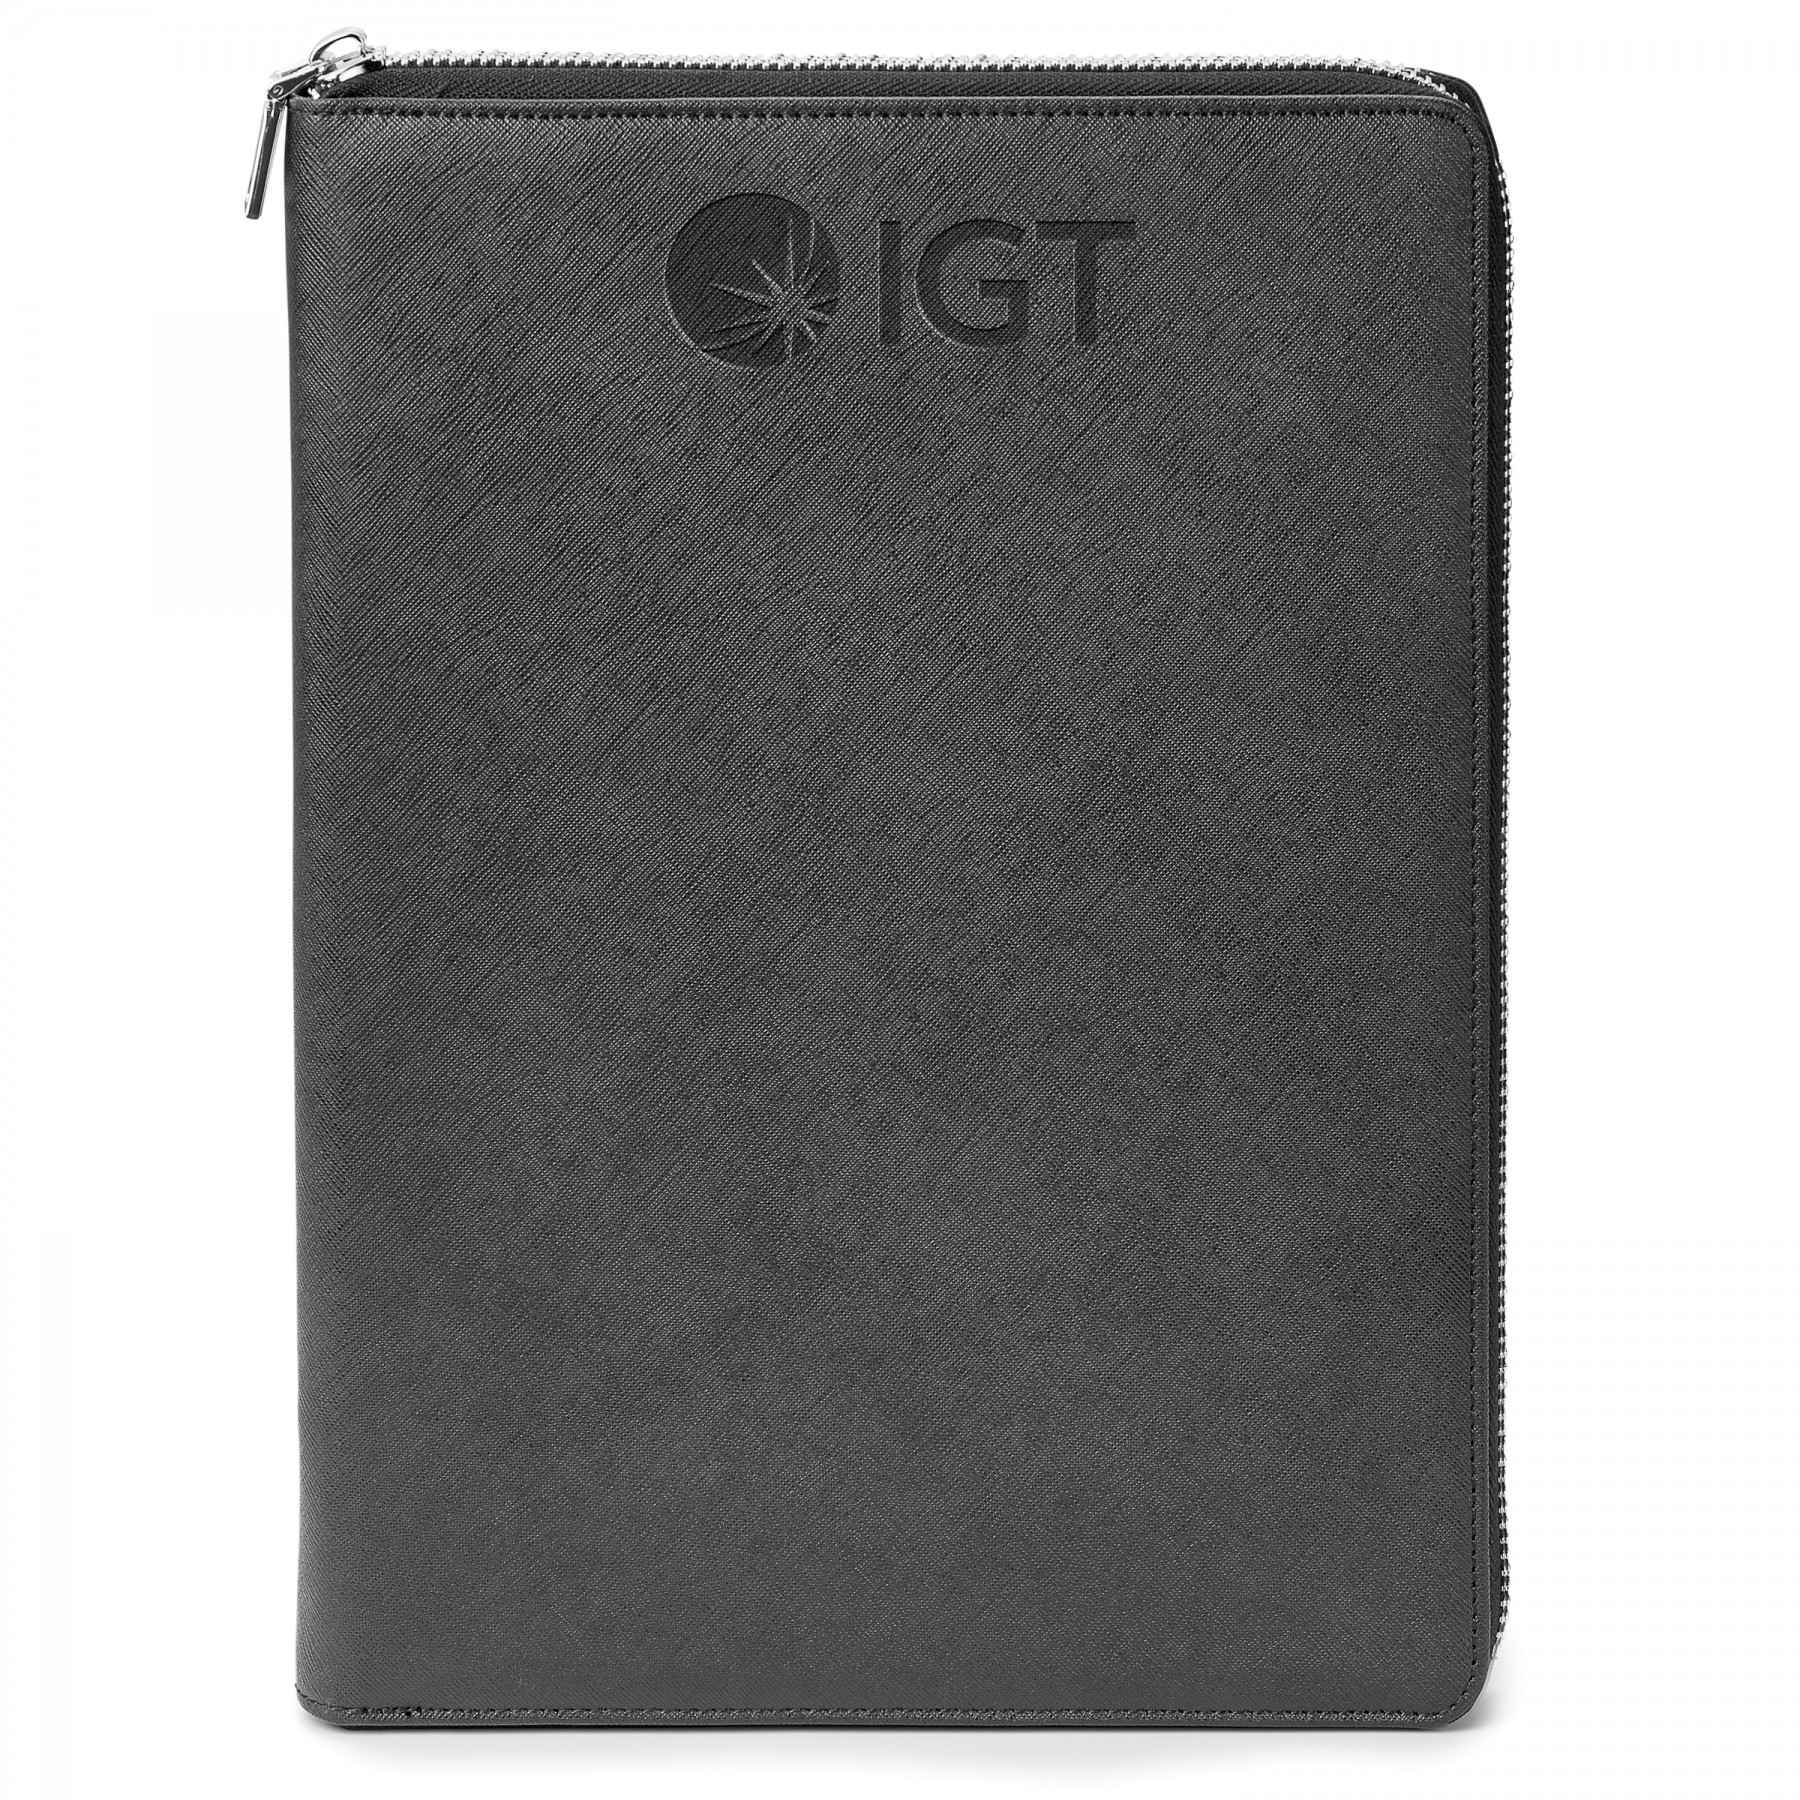 Genuine Leather A4 Size Rfid Portfolio - Debossed Imprint (ST605)